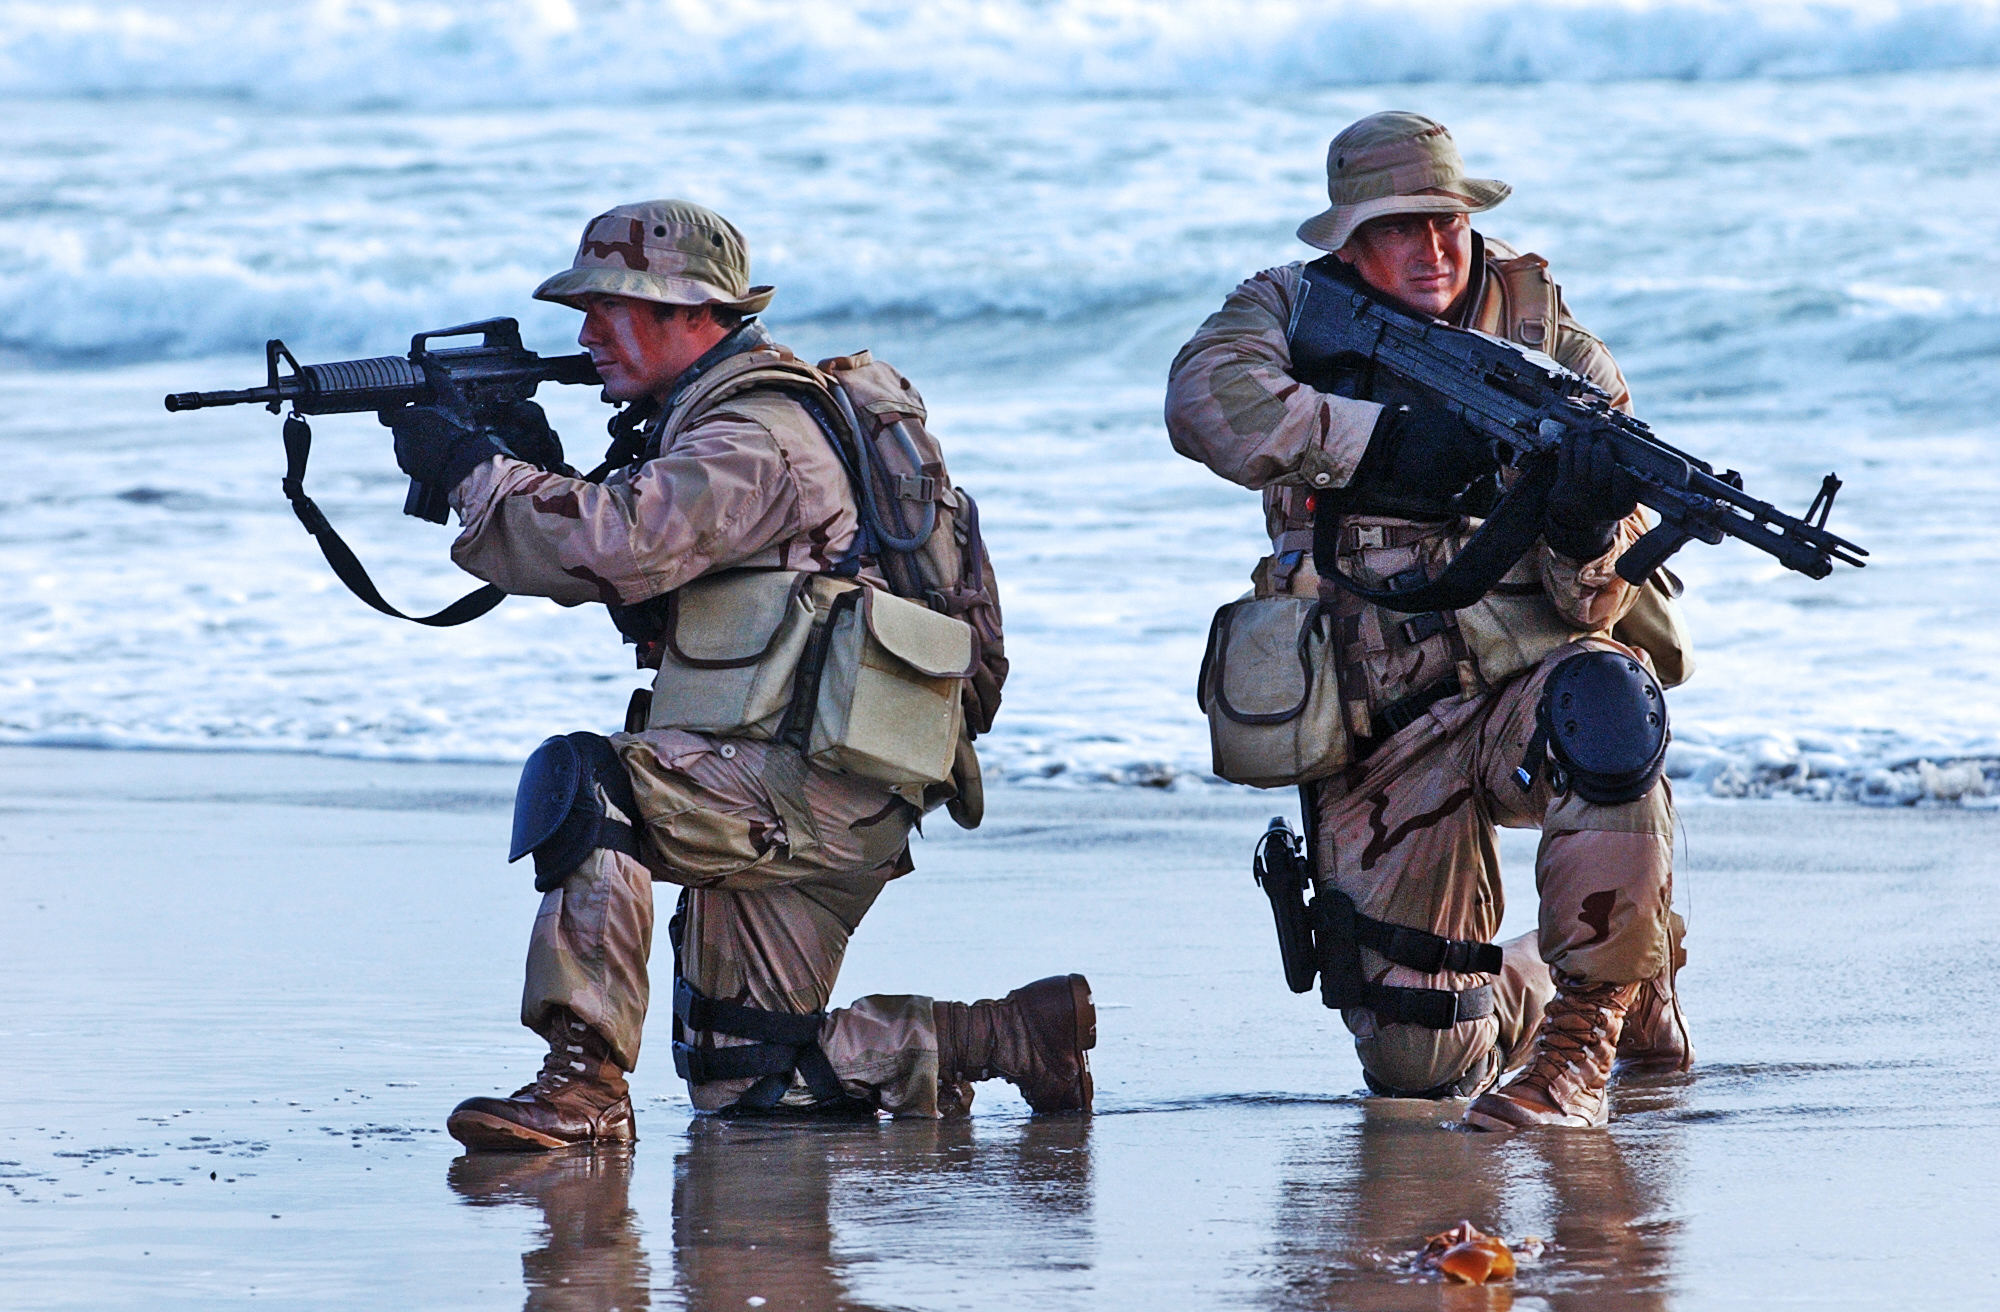 File:United States Navy SEALs 547.jpg - Wikimedia Commons